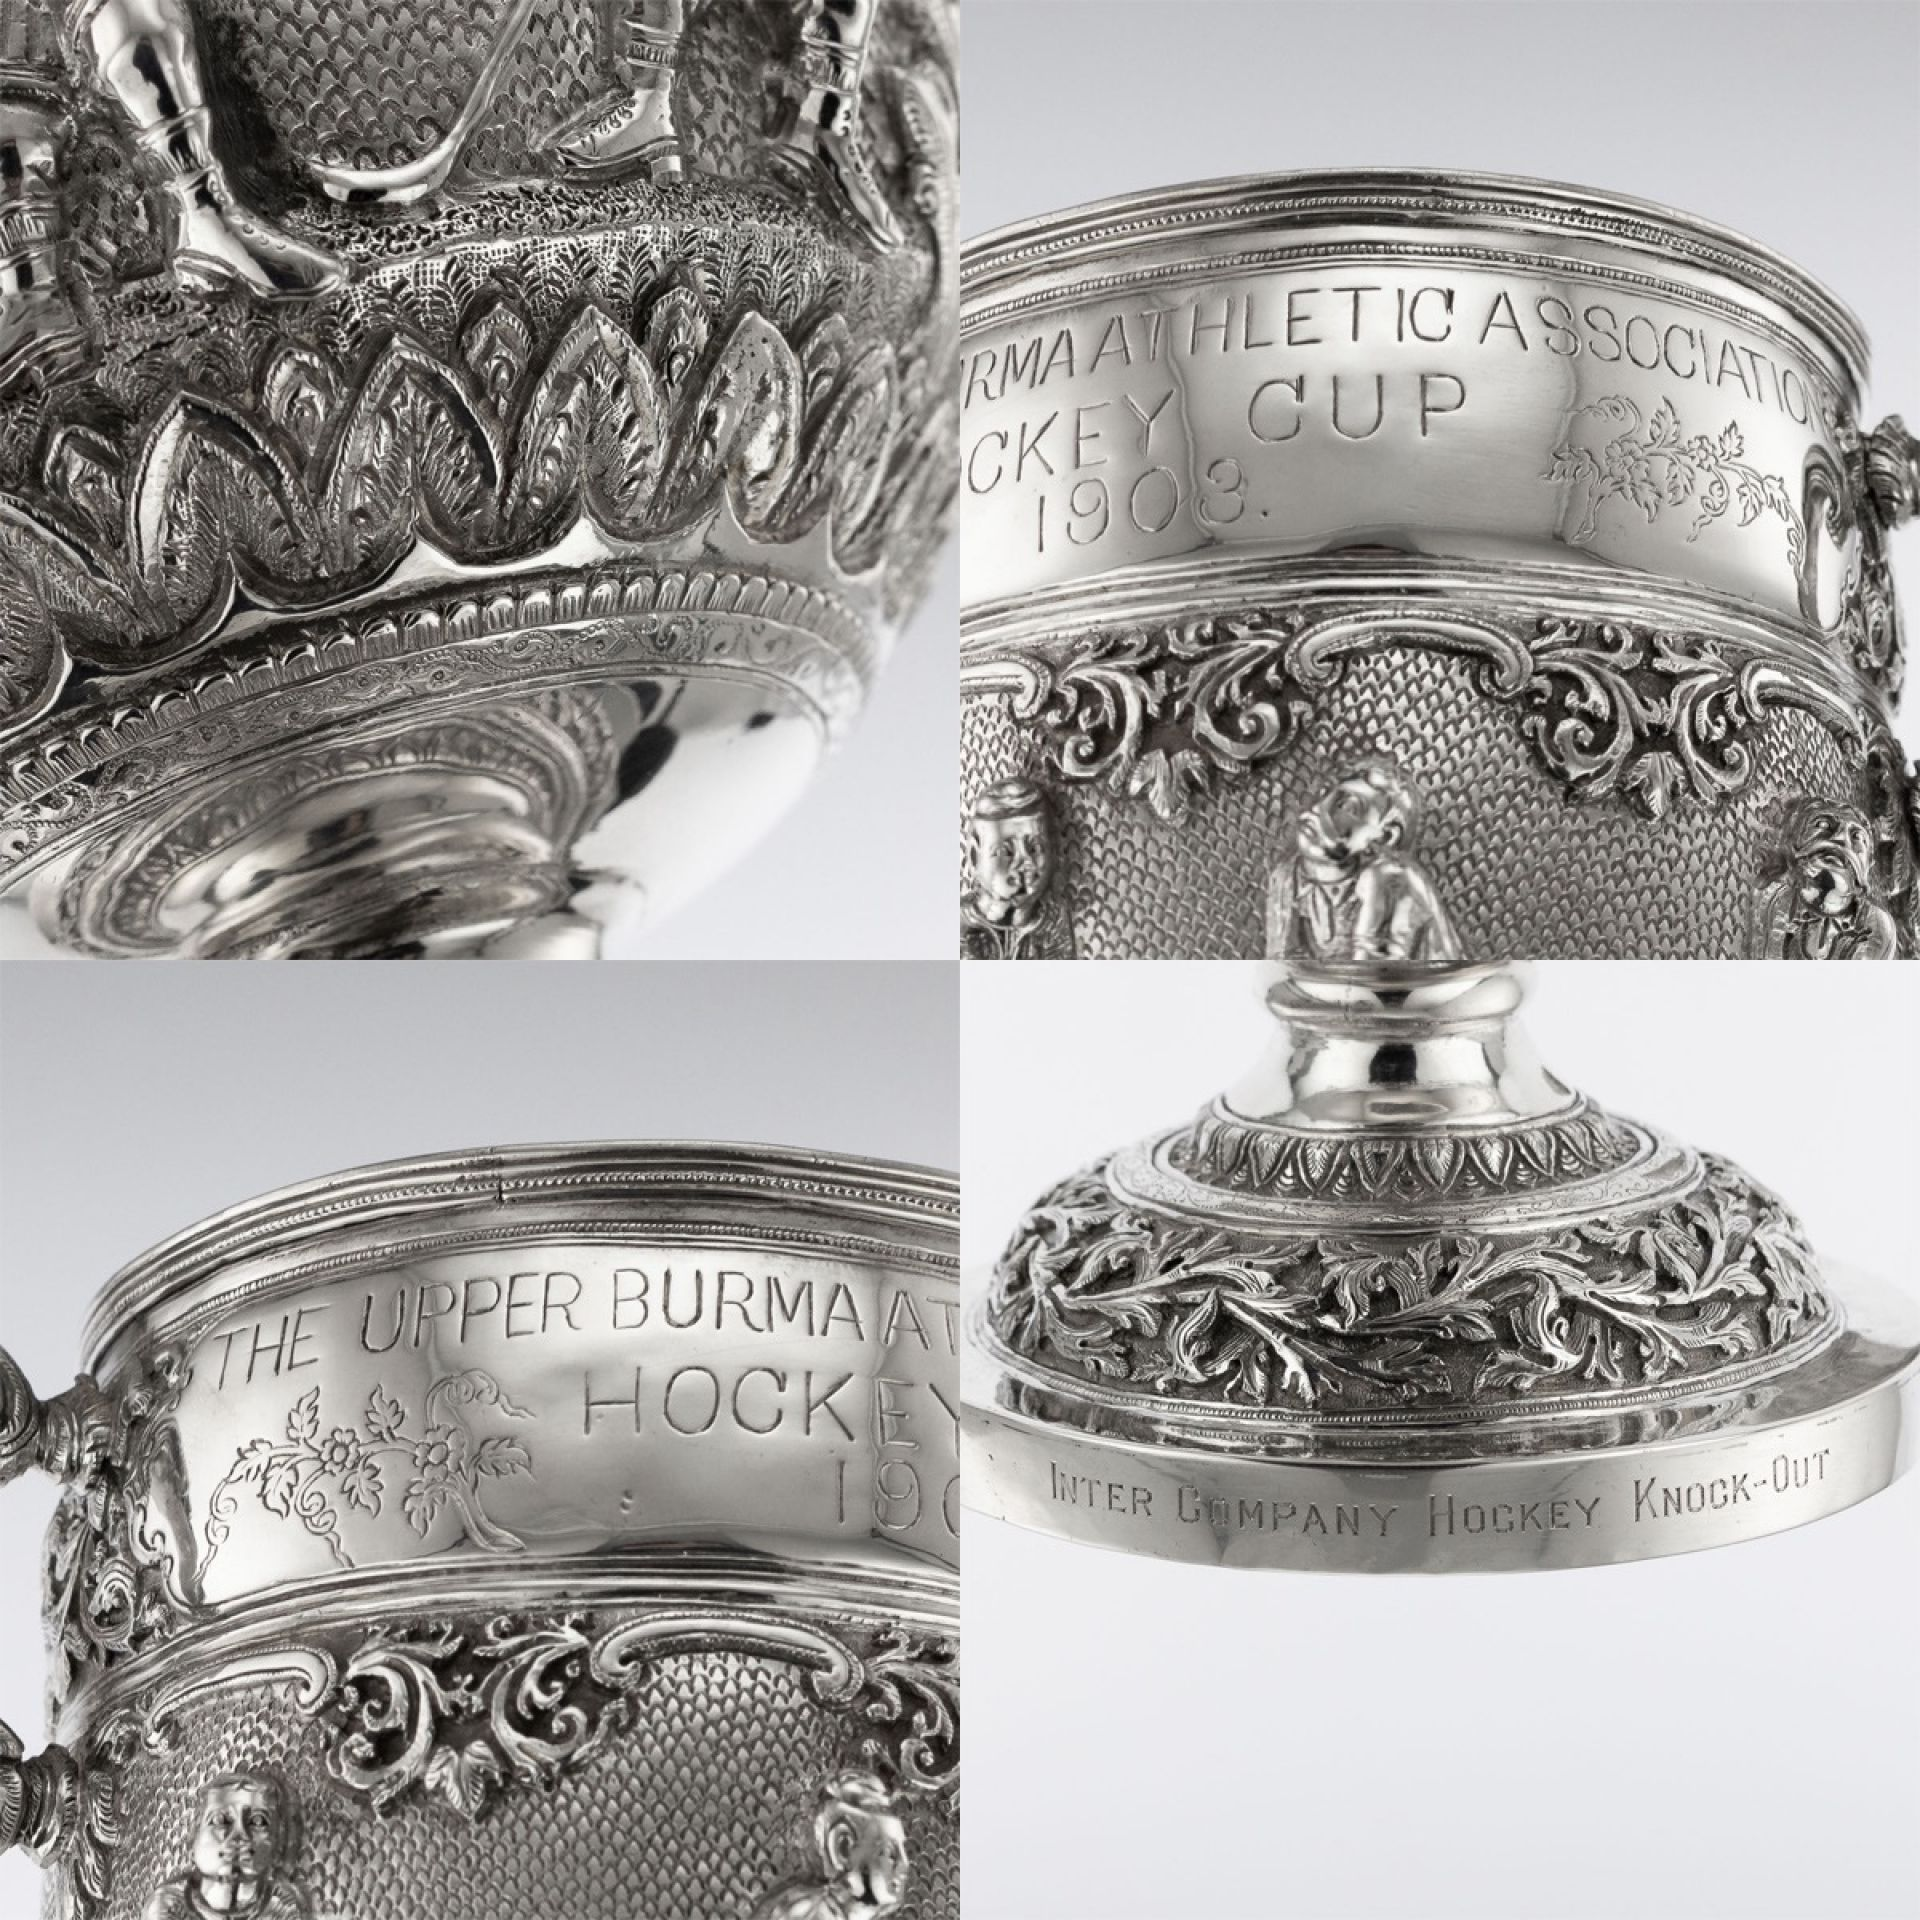 ANTIQUE 20THC BURMESE SOLID SILVER ATHLETIC ASSOCIATION HOCKEY CUP C.1903